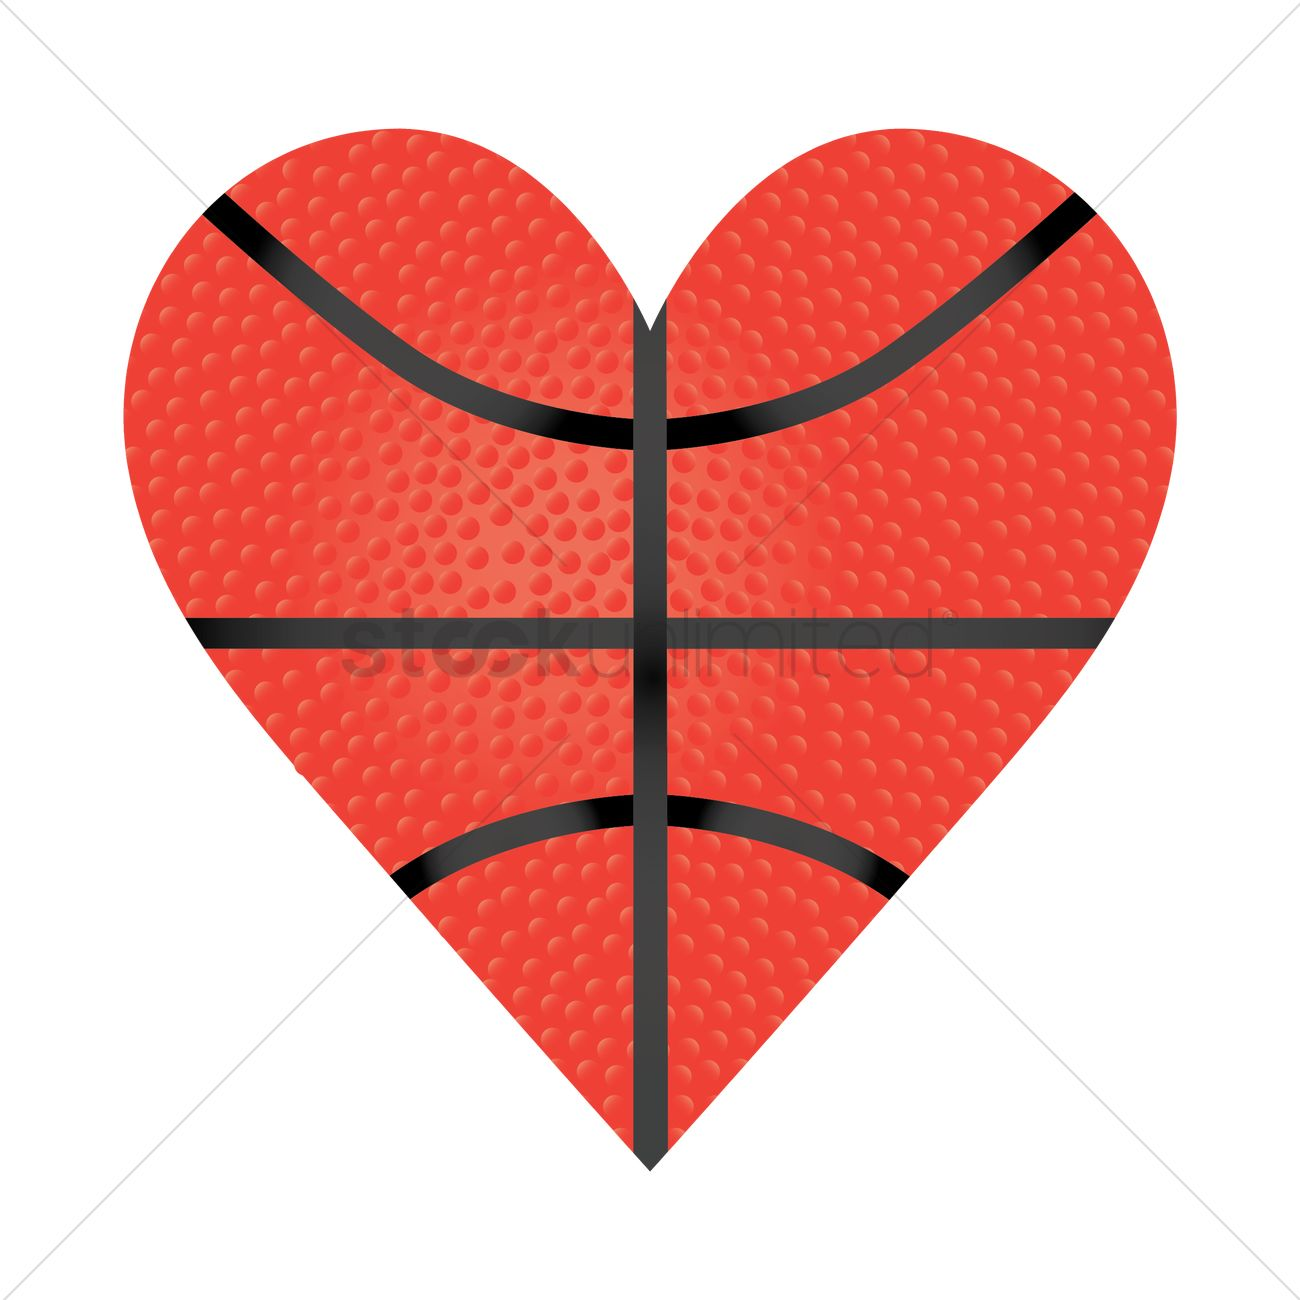 Heart shaped basketball clipart 2 » Clipart Station.